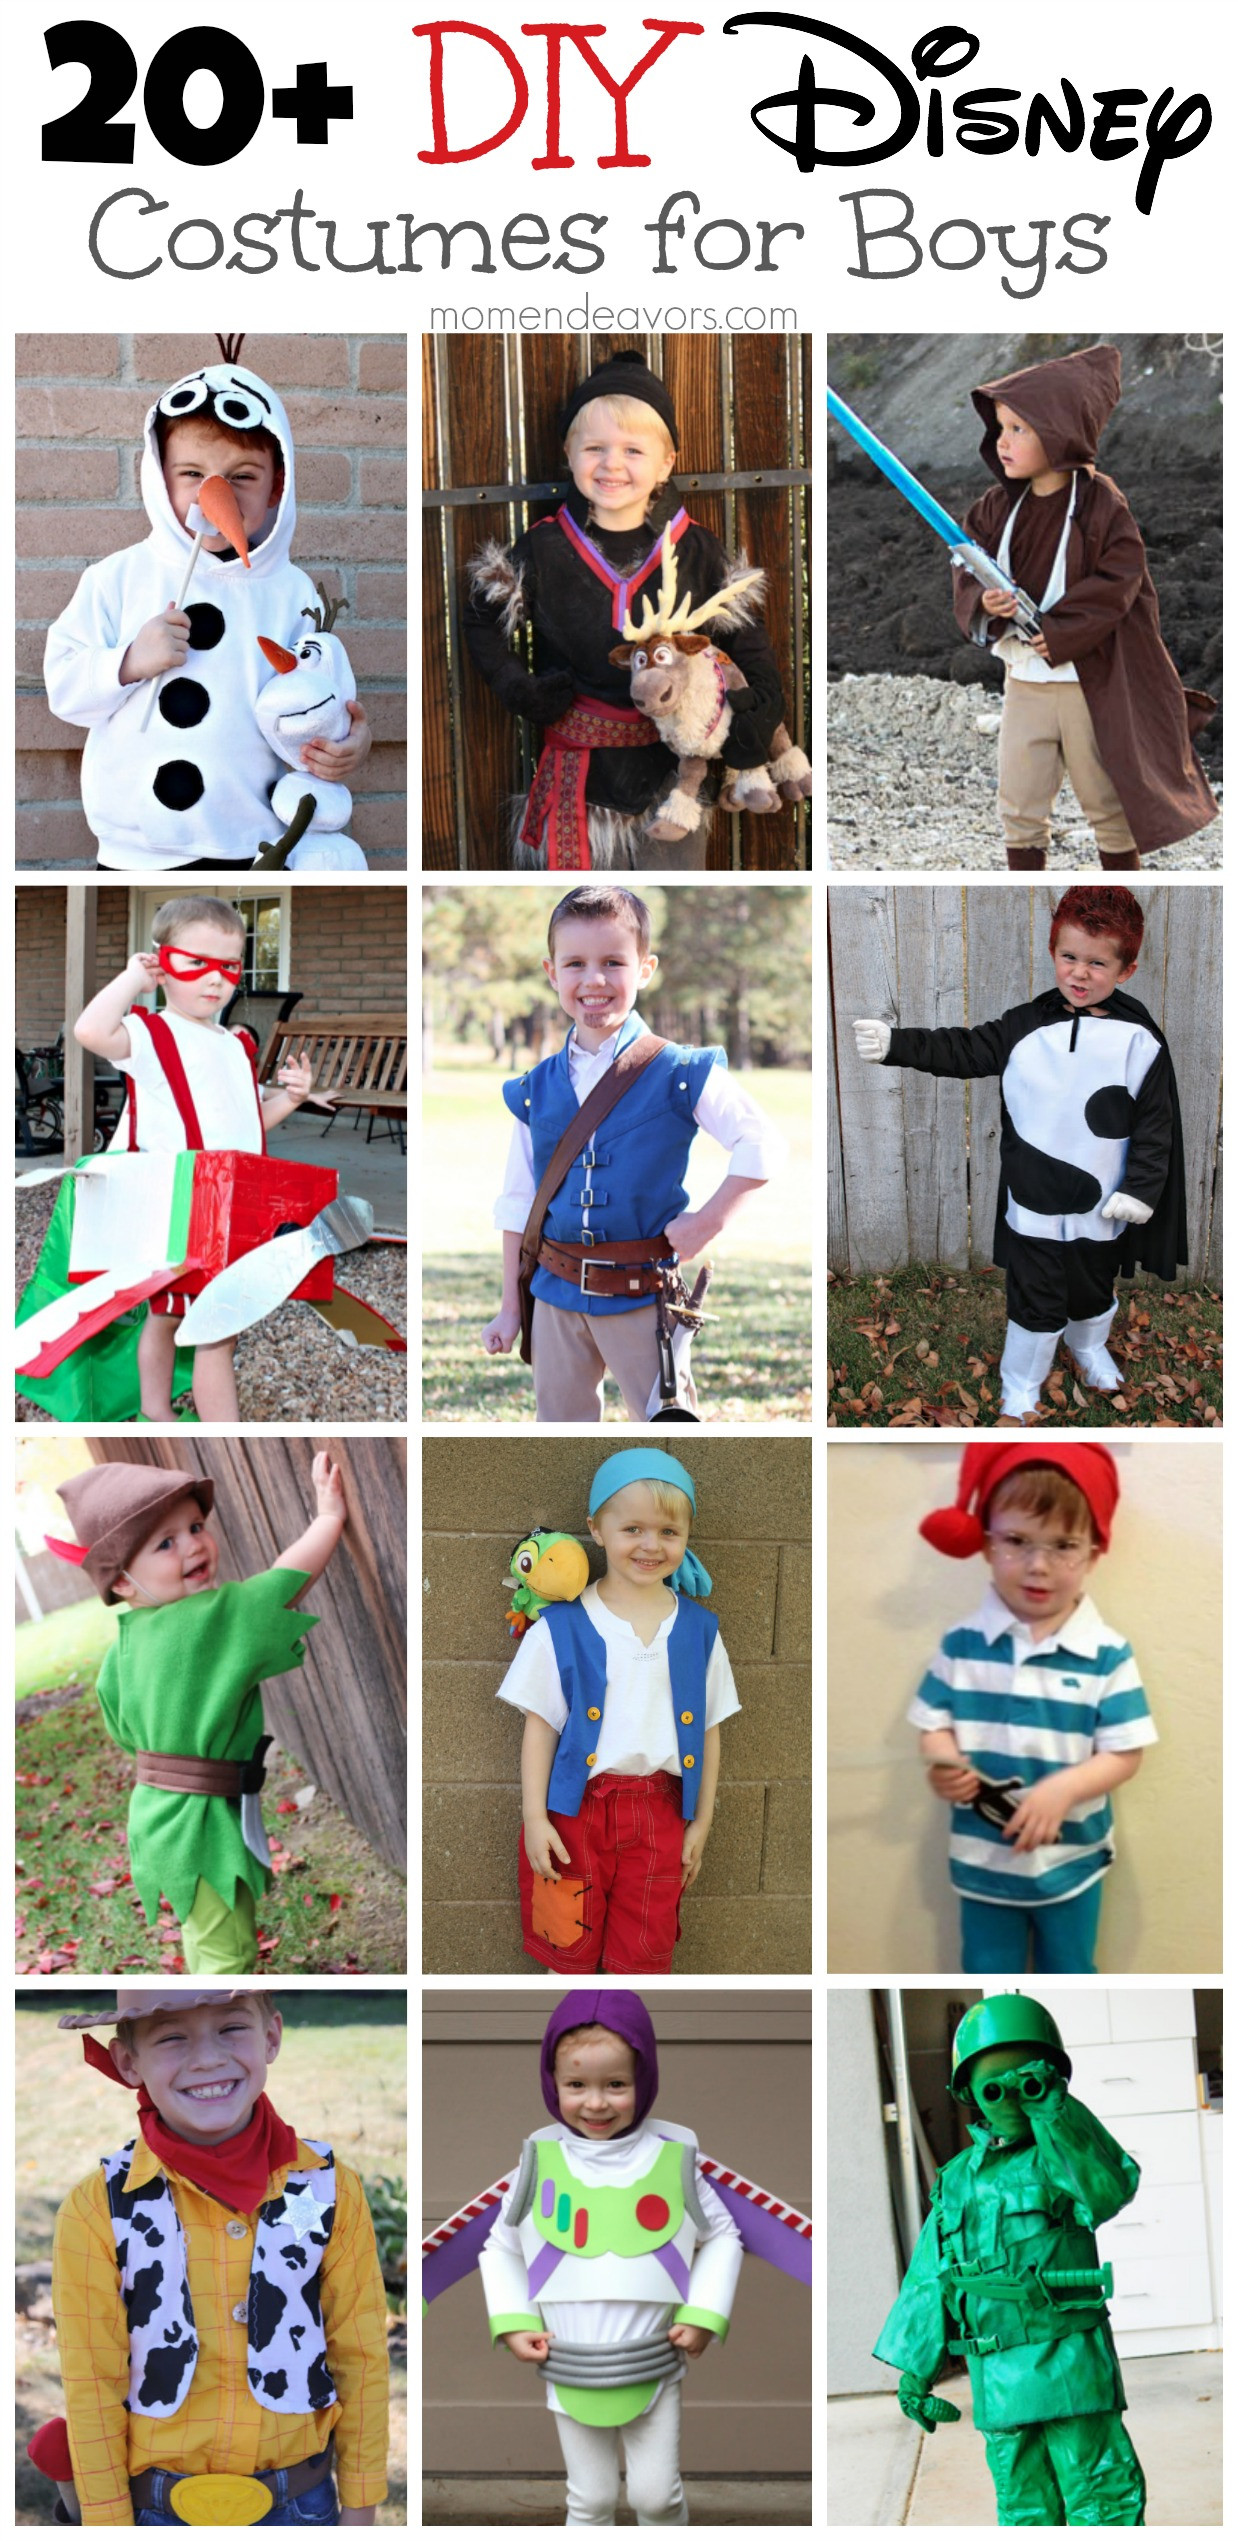 Best ideas about Disney Character Costumes DIY . Save or Pin DIY Disney Costumes for Boys Now.